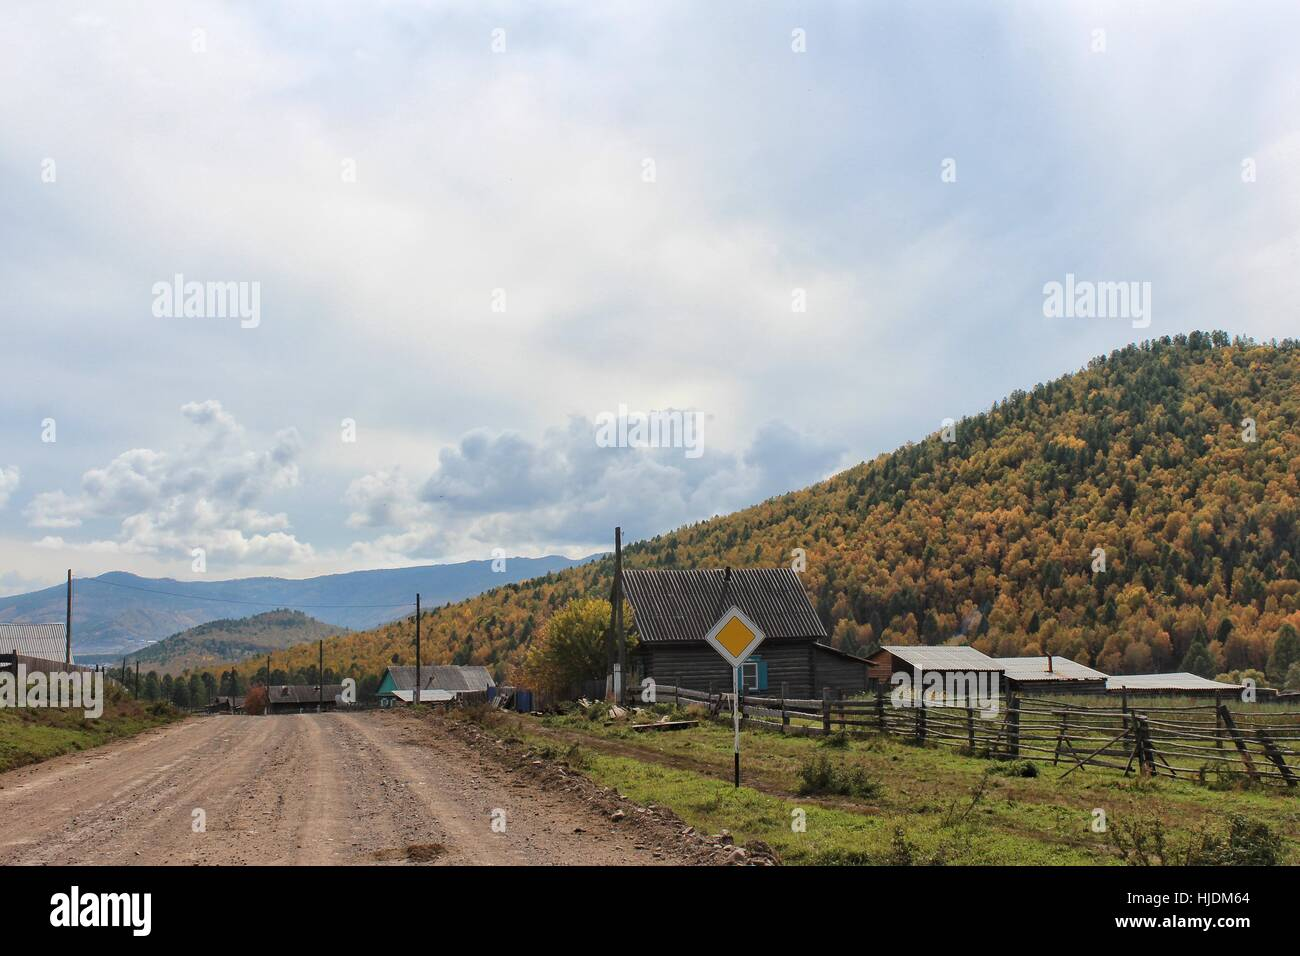 Rural road passing through the village in the mountains. Autumn mountain landscape. - Stock Image